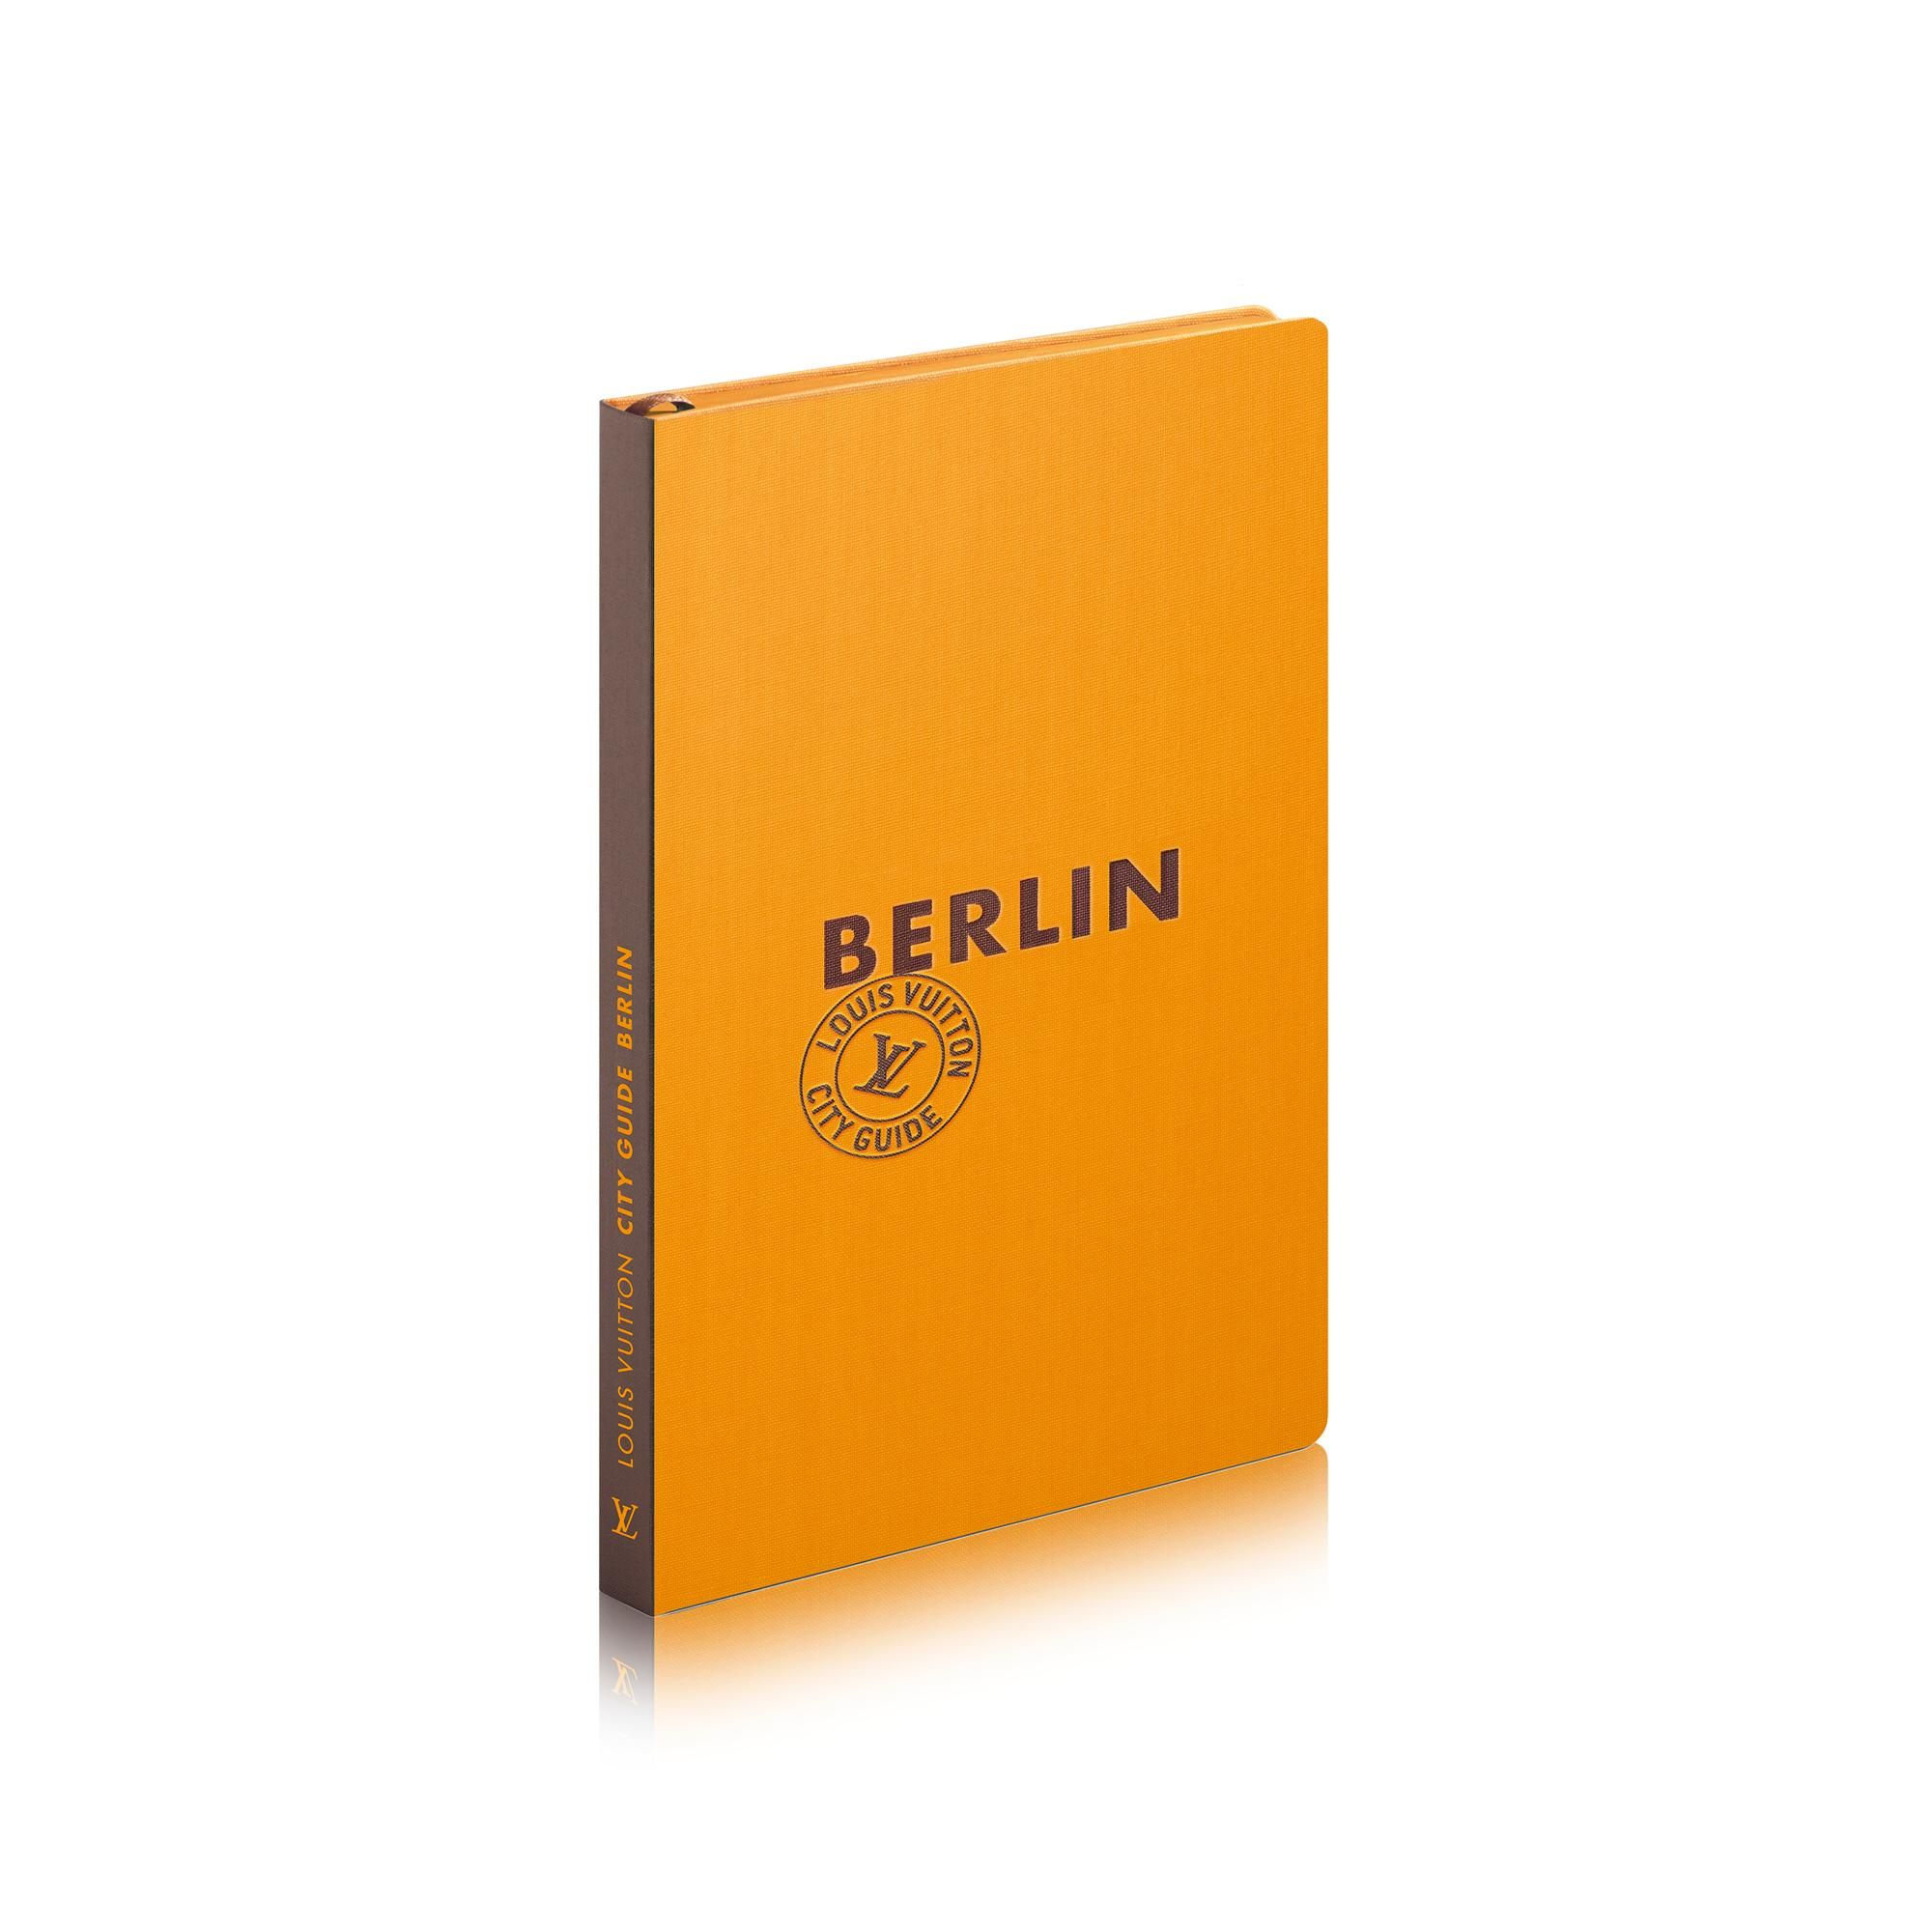 Louis Vuitton Berlin City Guide French Version Berlin City City Guide Louis Vuitton